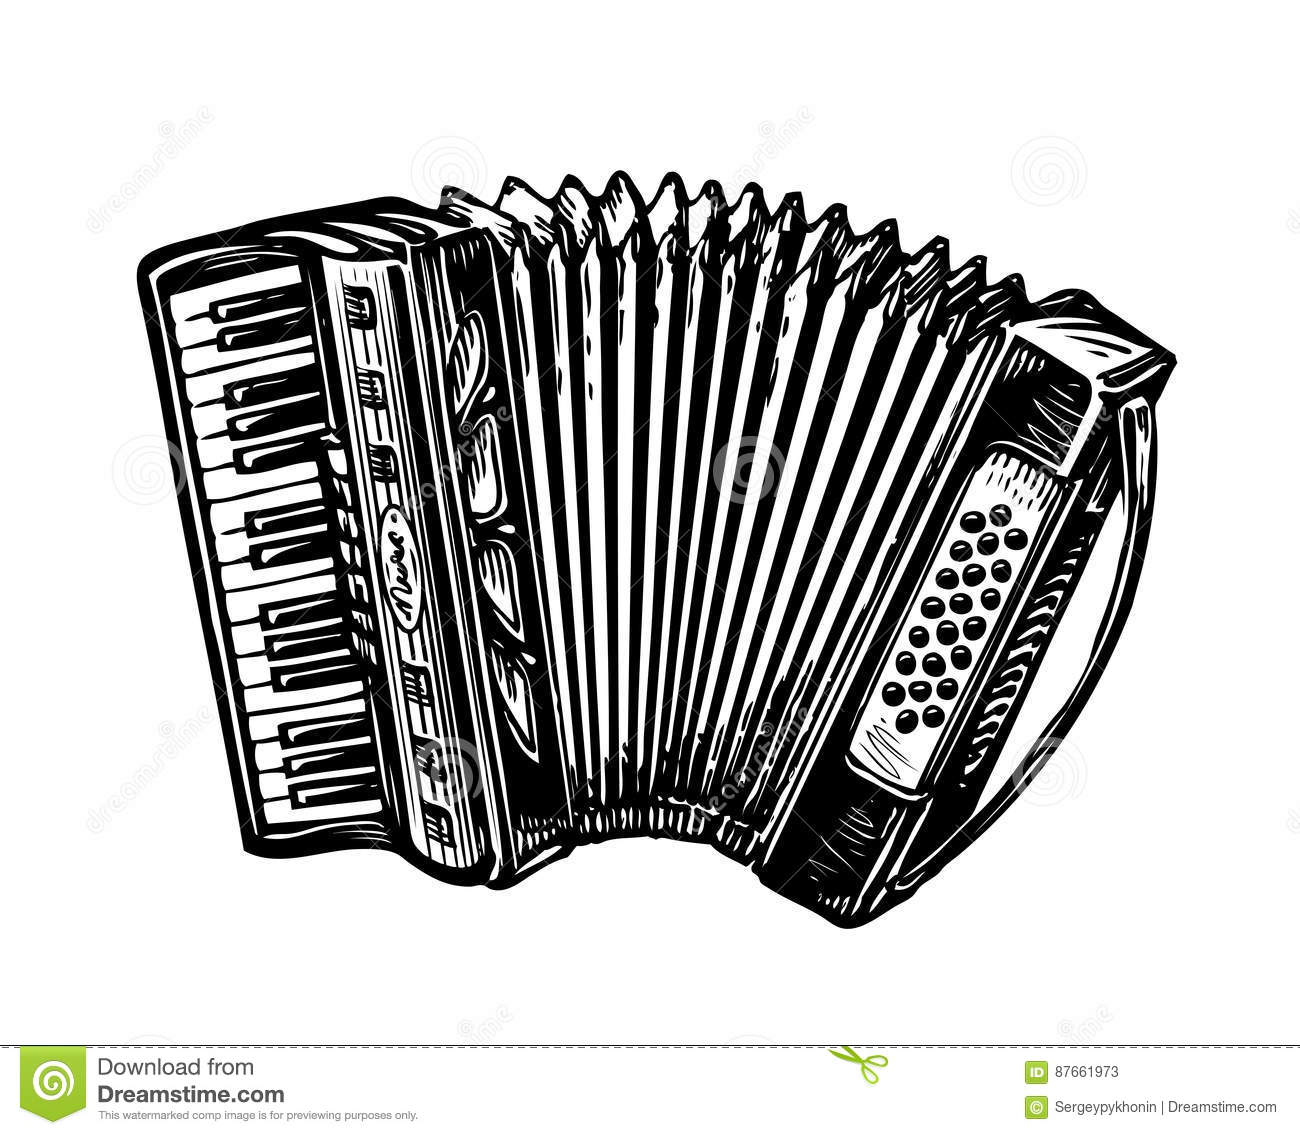 Songwriter Cartoons, Illustrations & Vector Stock Images